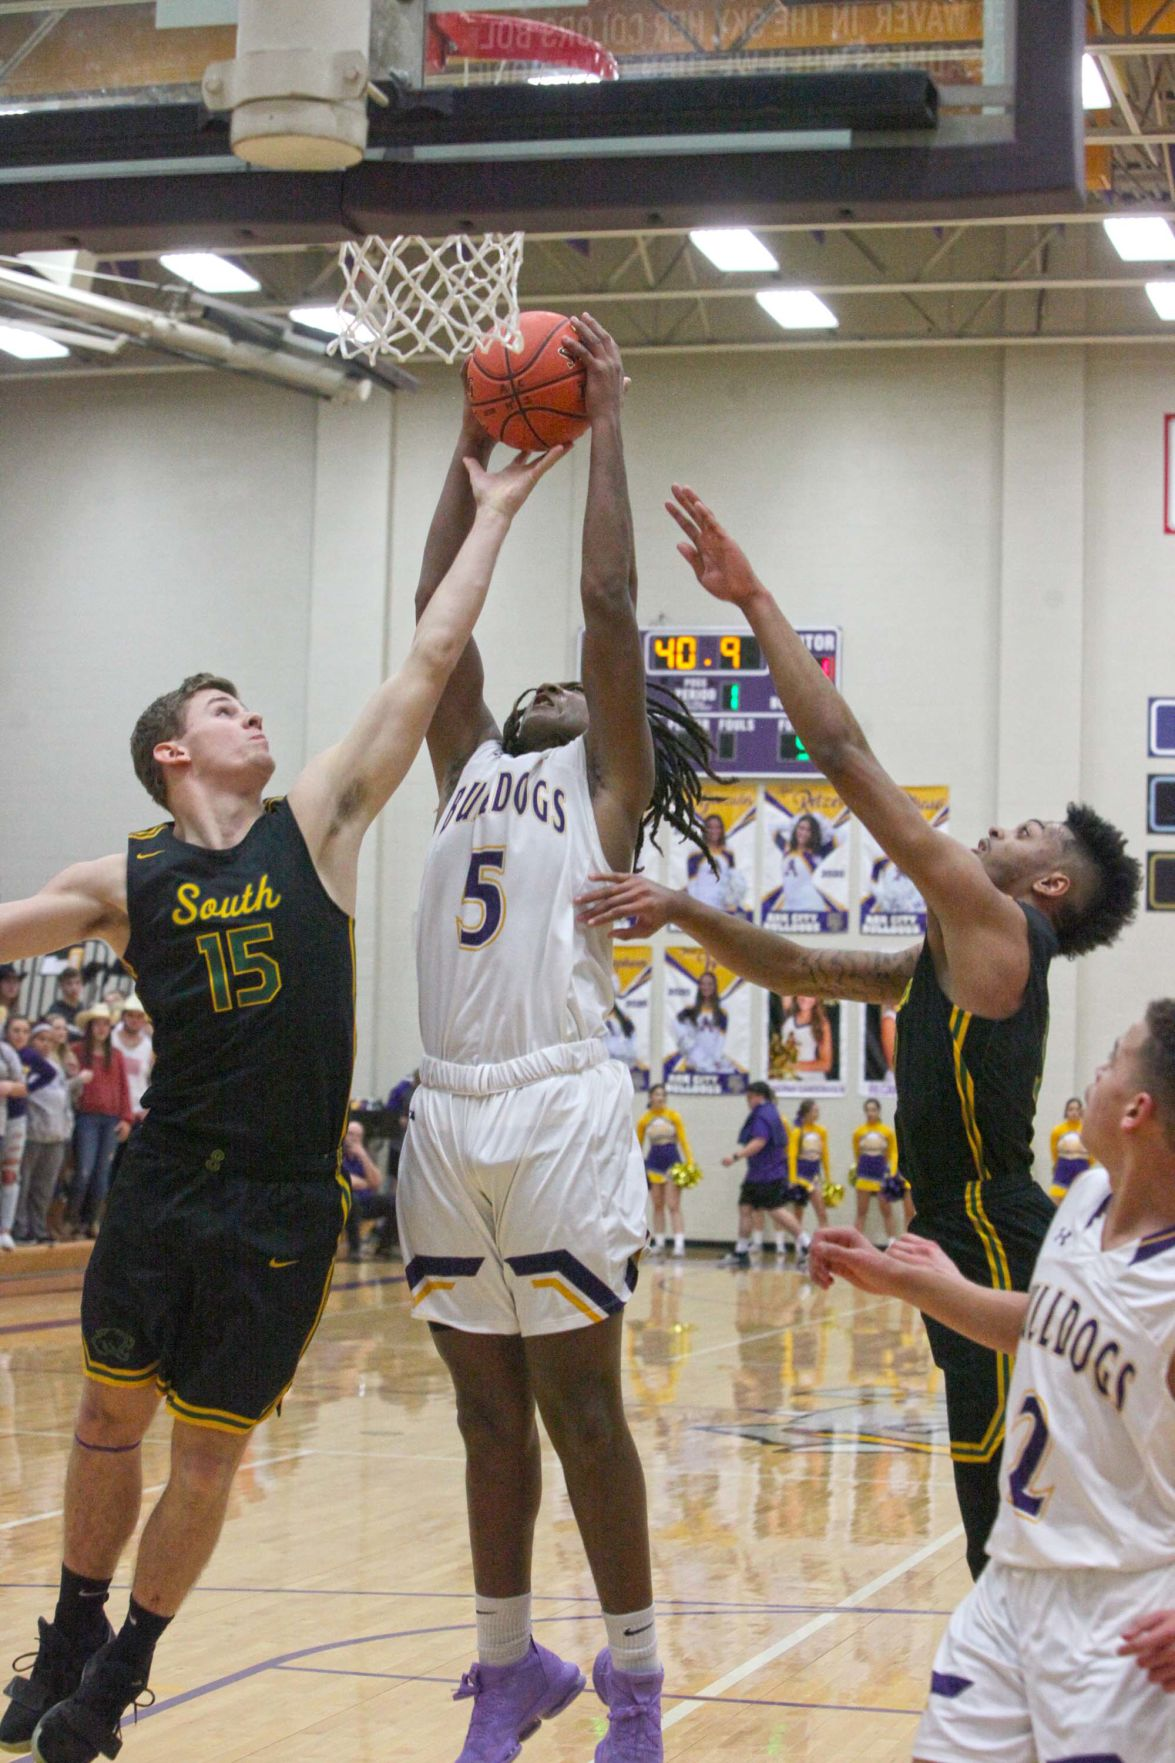 Jordan notches double-double as 'Dawgs top Valley Center in OT